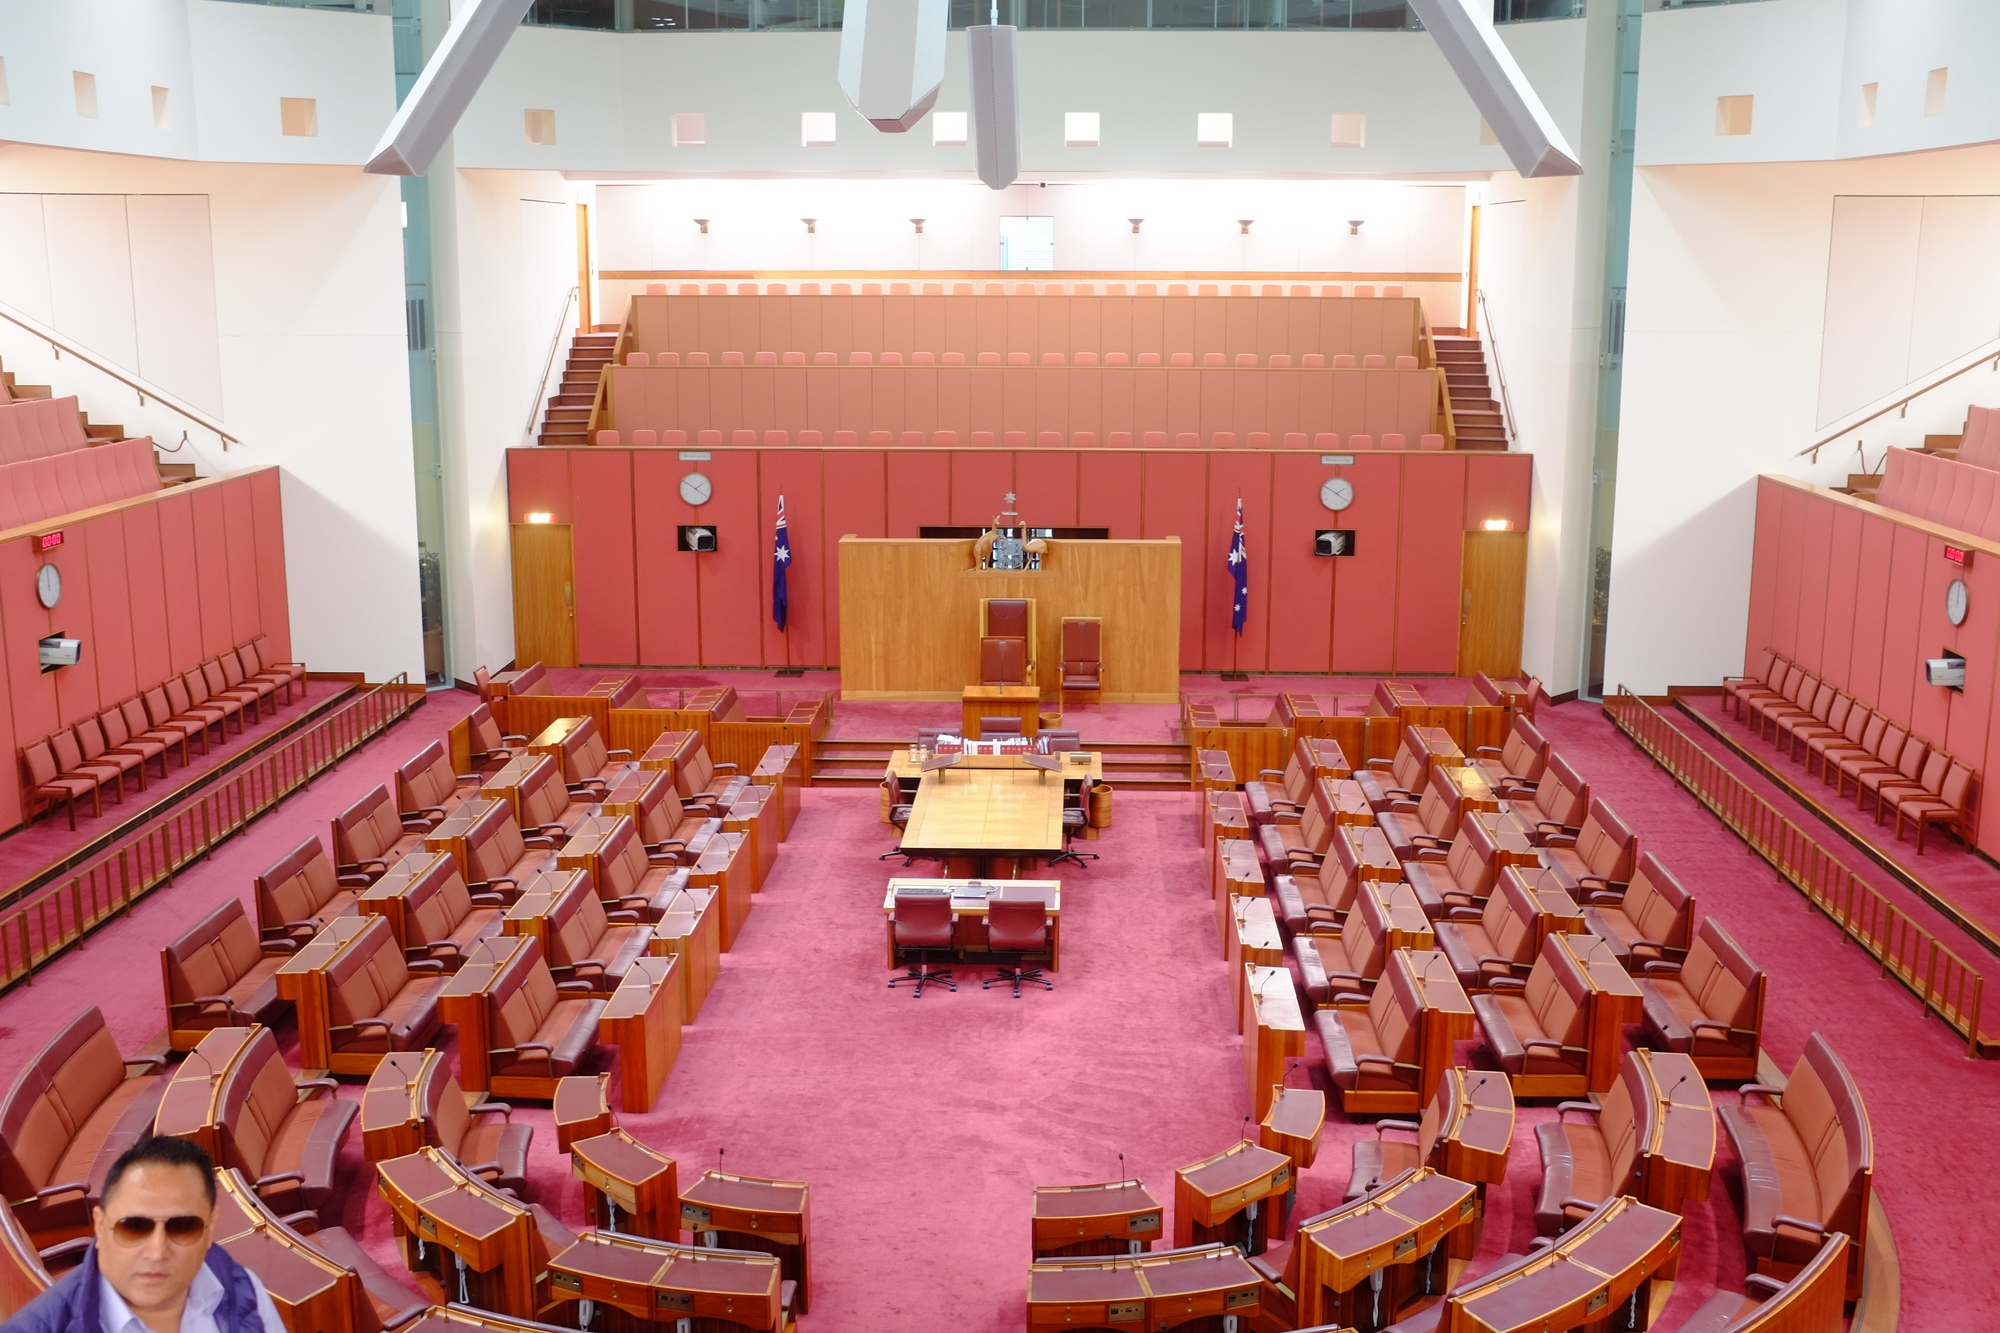 senate chamber in parliament house